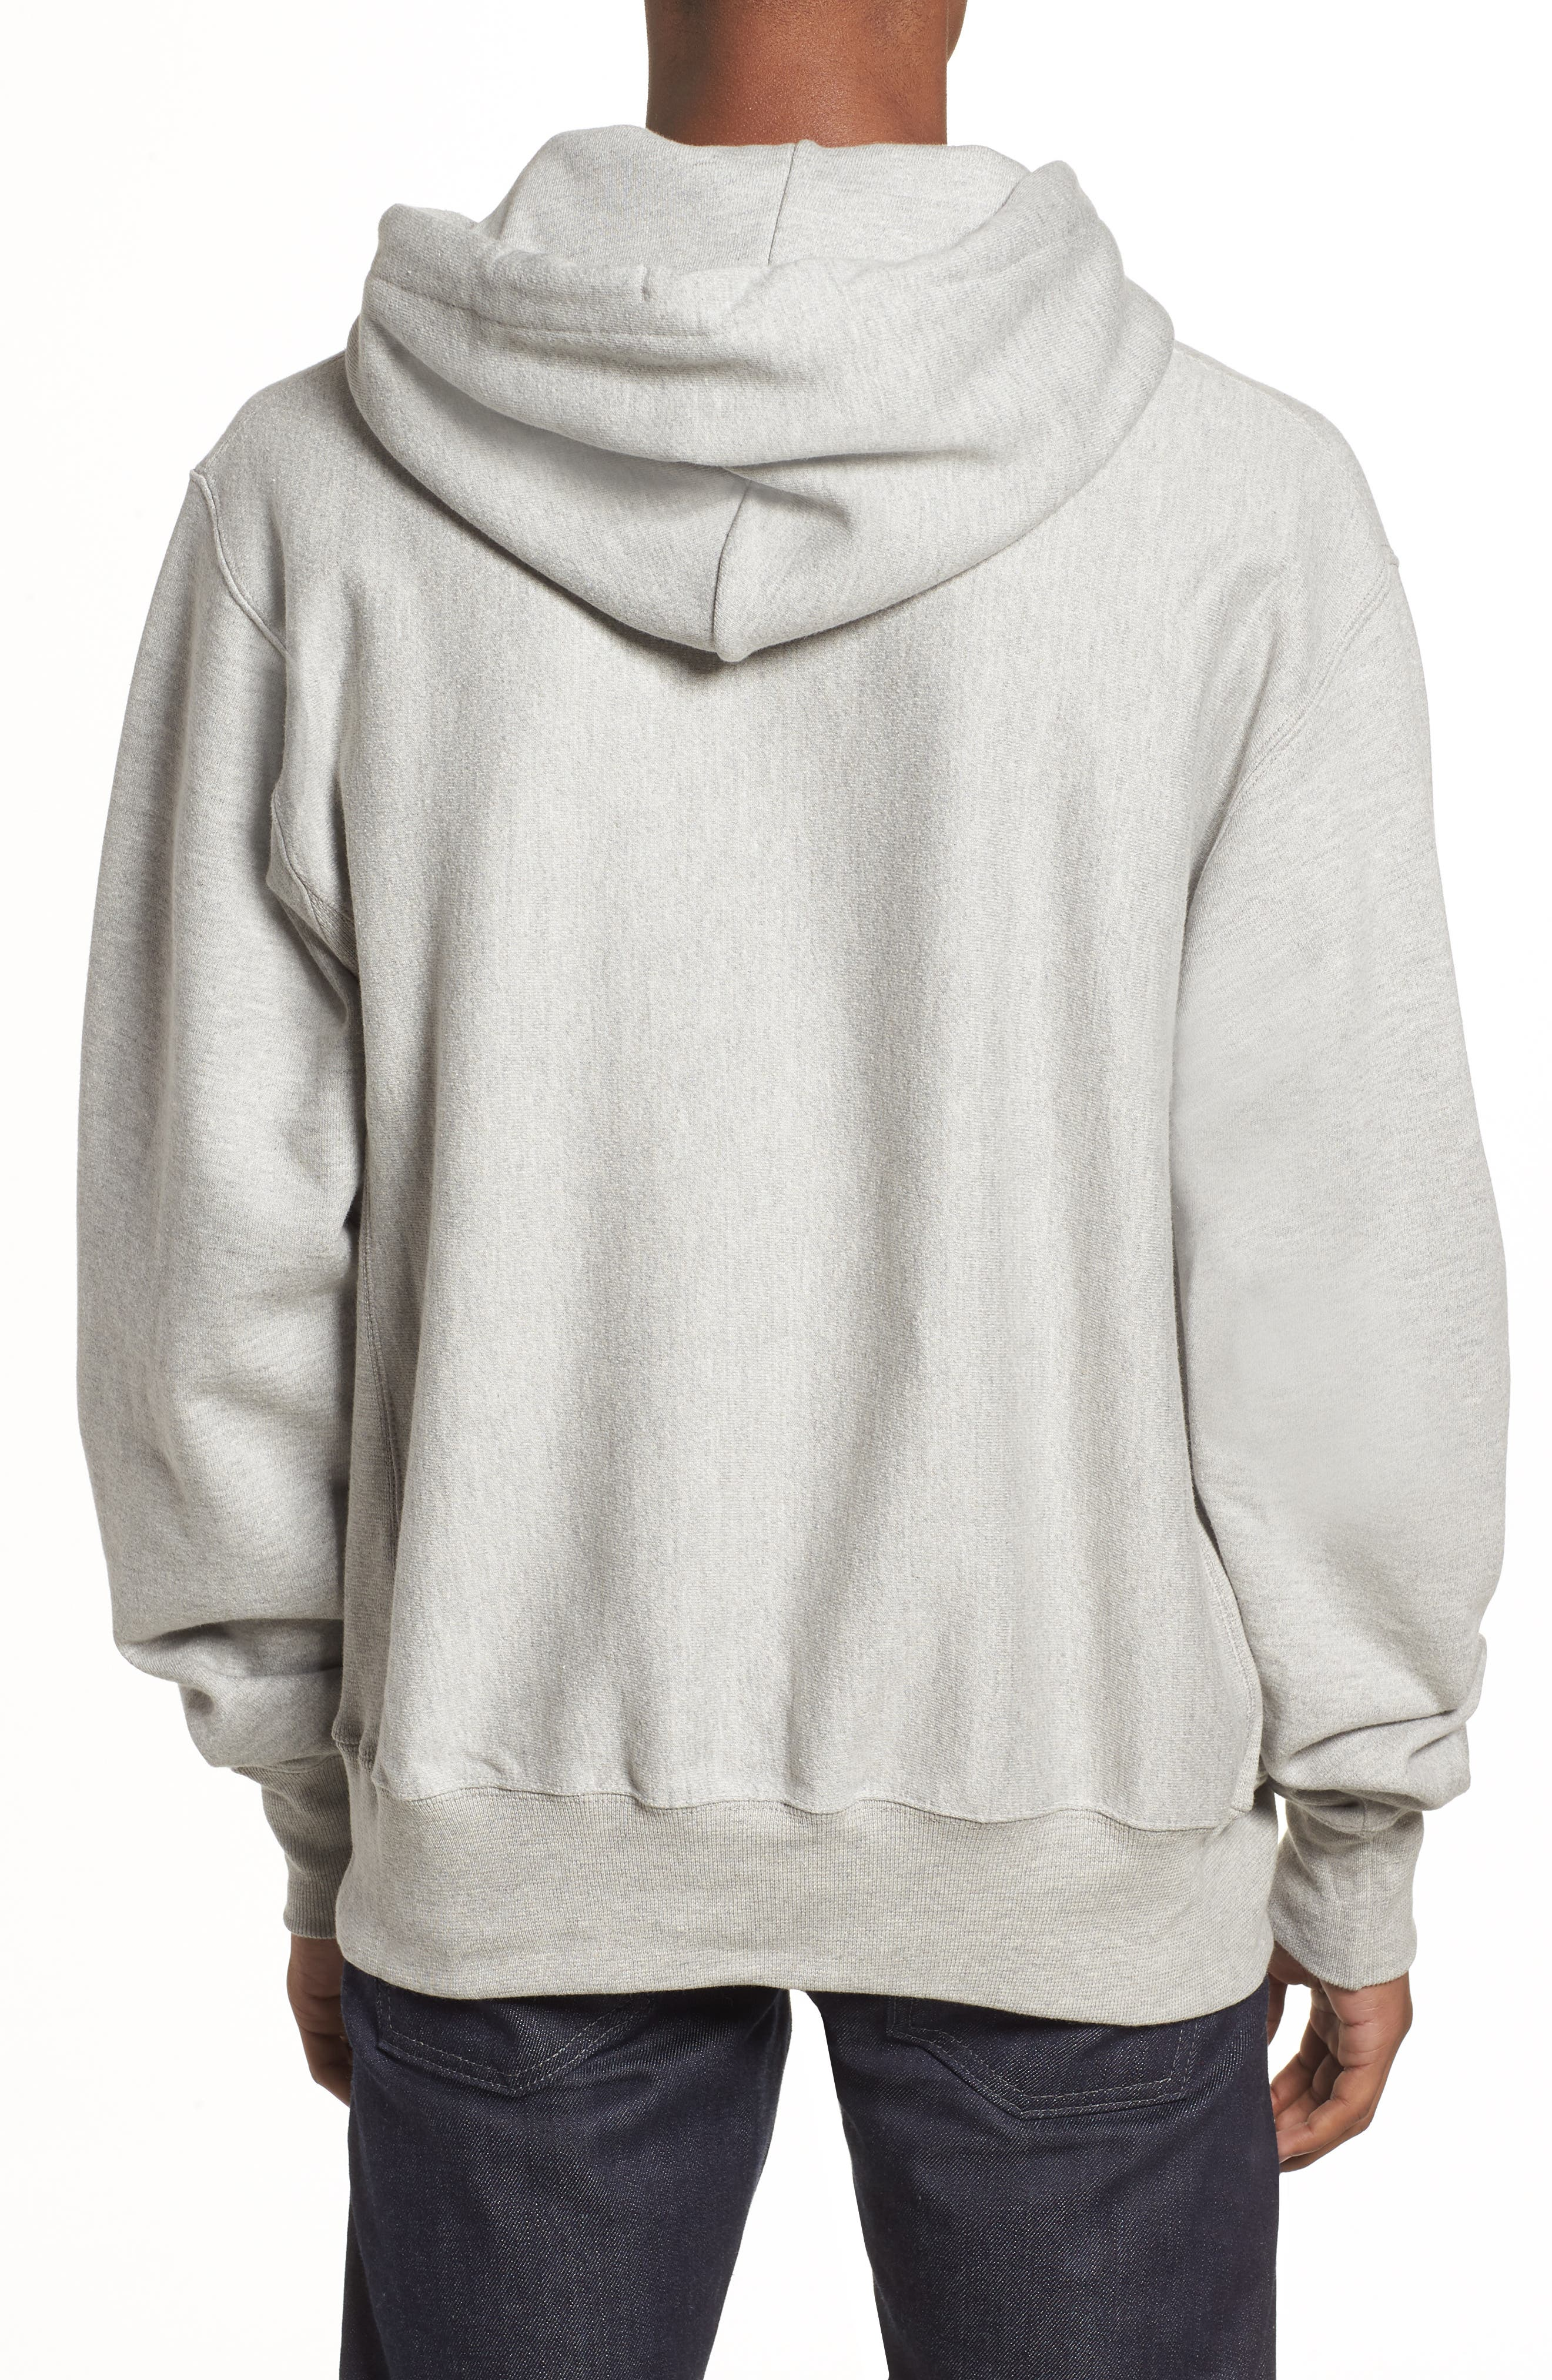 Snoopy Unisex Pullover Hoodie,                             Alternate thumbnail 3, color,                             Oxford Grey